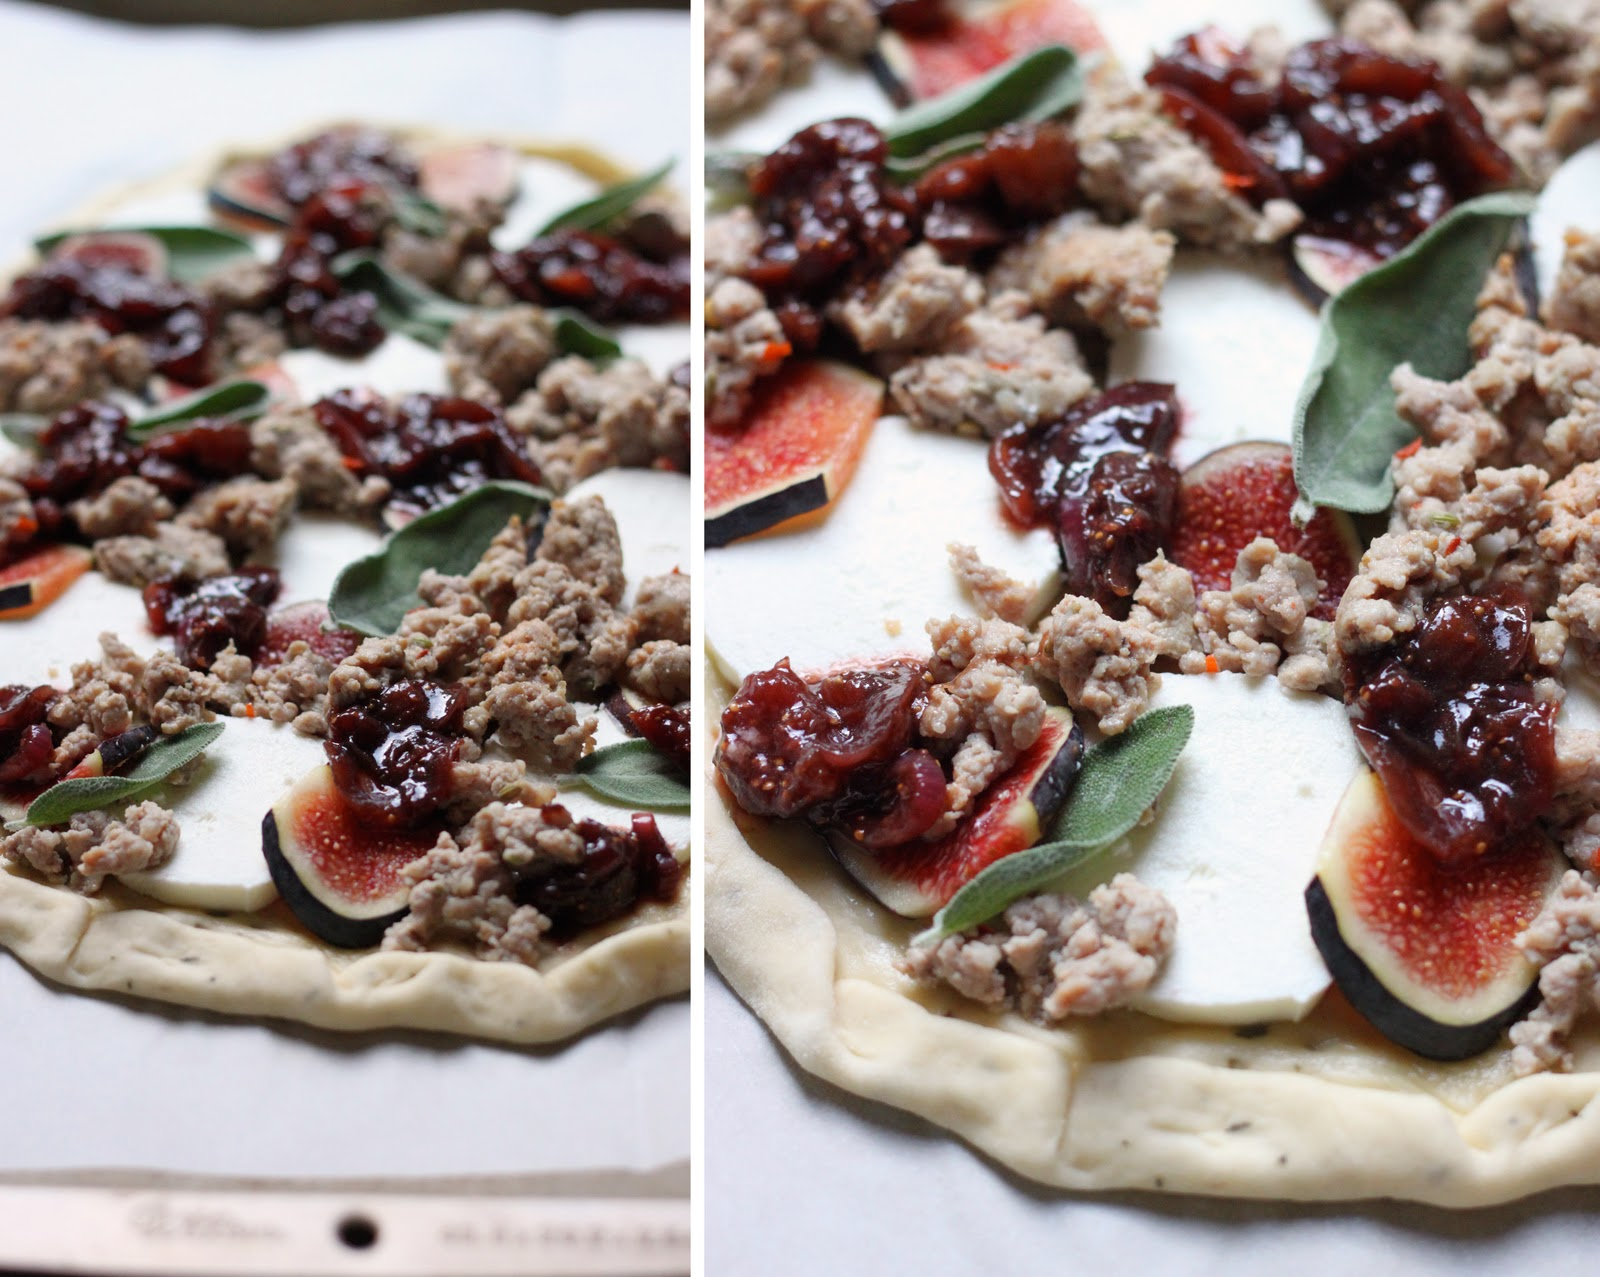 The Cilantropist: Sausage and Goat Cheese Pizza, with Balsamic Onions ...